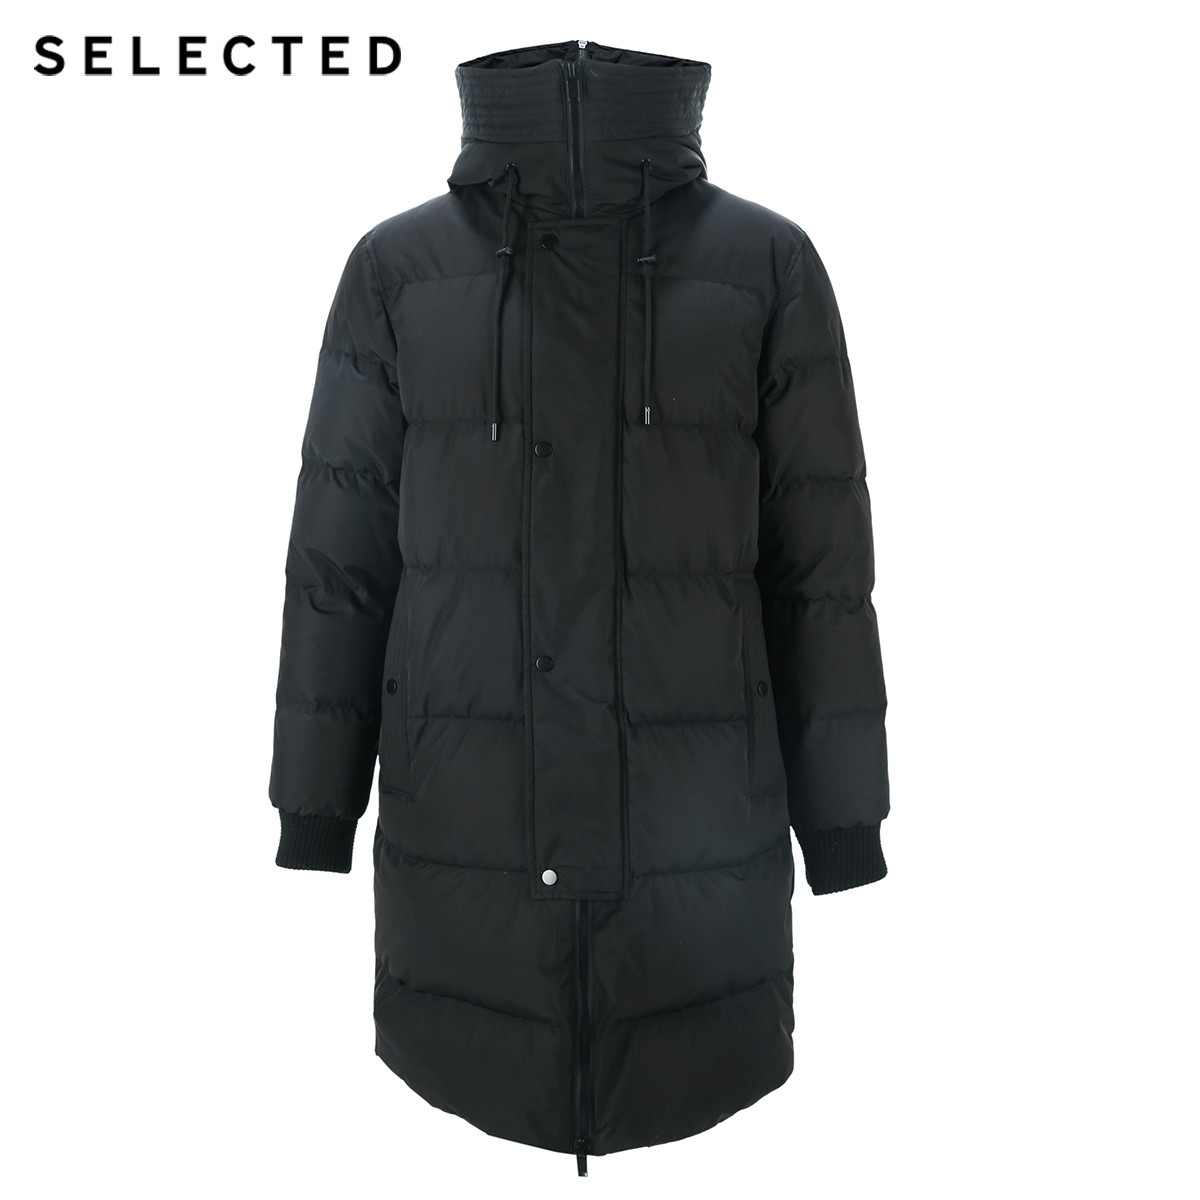 SELECTED New Winter Down Jacket Men 39 s Zipper and Hat Casual Medium and Long Coat Suit S 418412503 in Down Jackets from Men 39 s Clothing